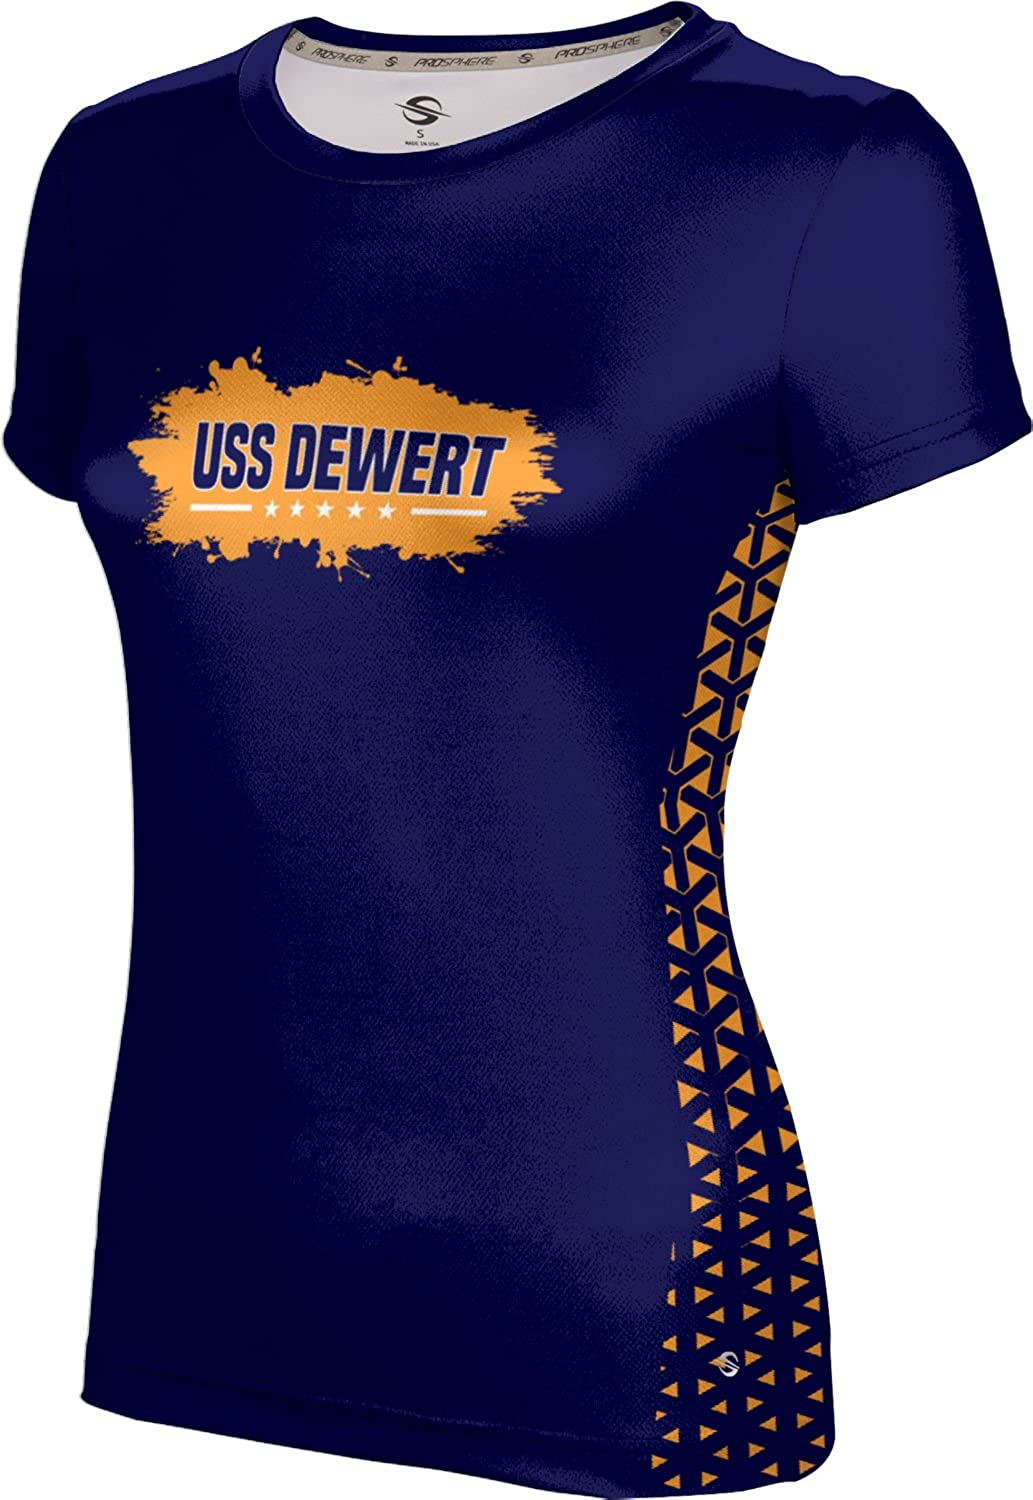 ProSphere Women's USS DeWert Military Geometric Tech Tee